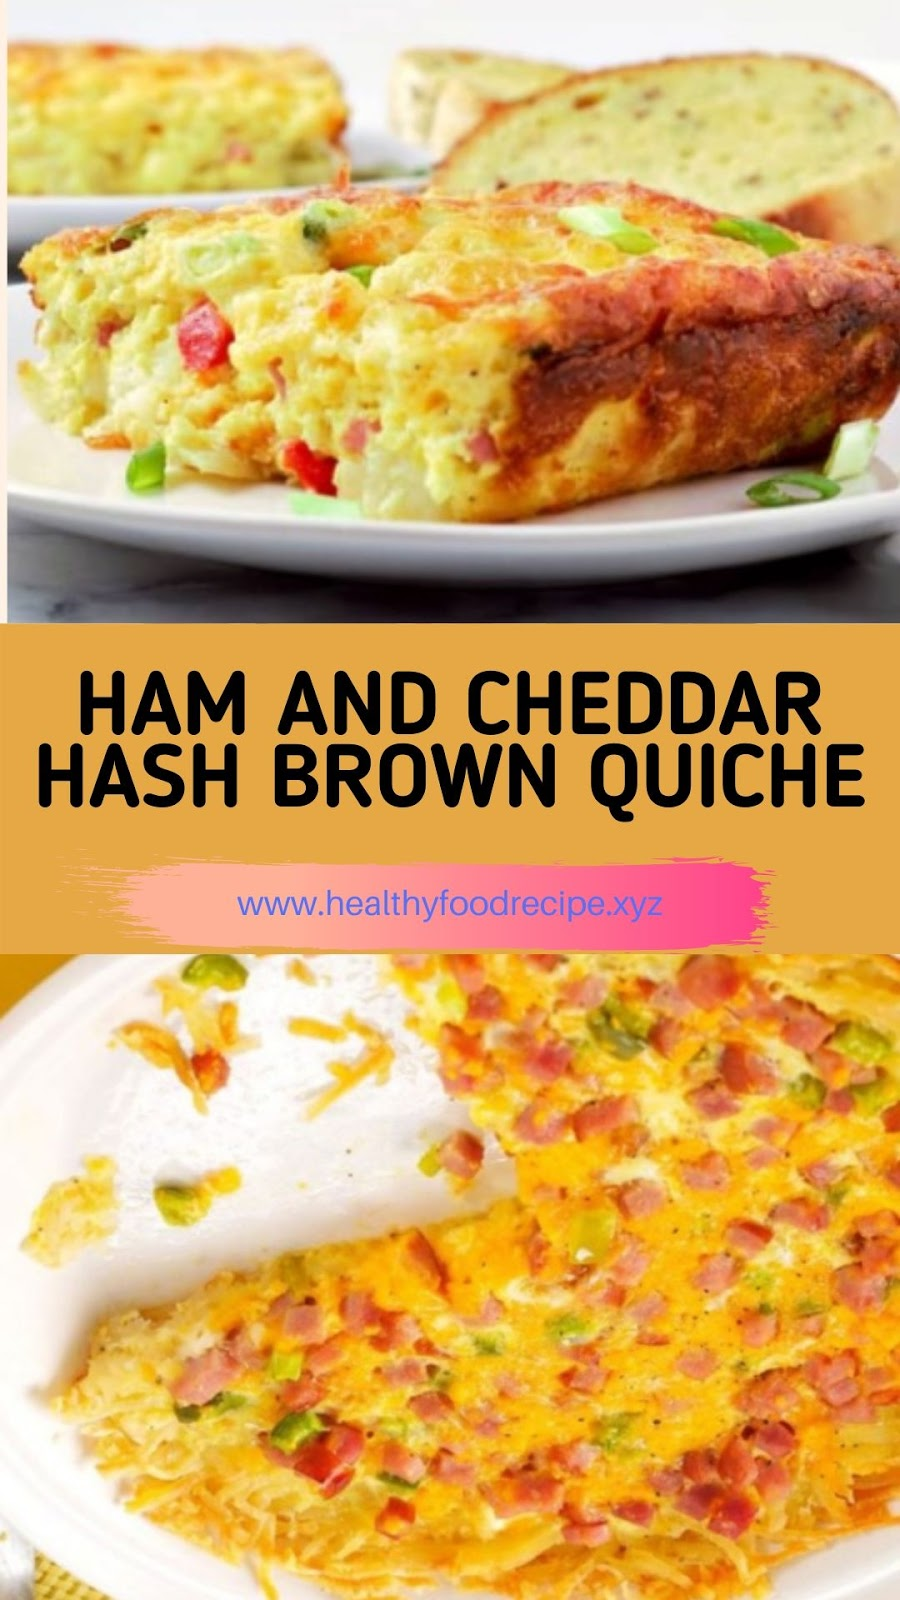 HAM AND CHEDDAR HASH BROWN QUICHE